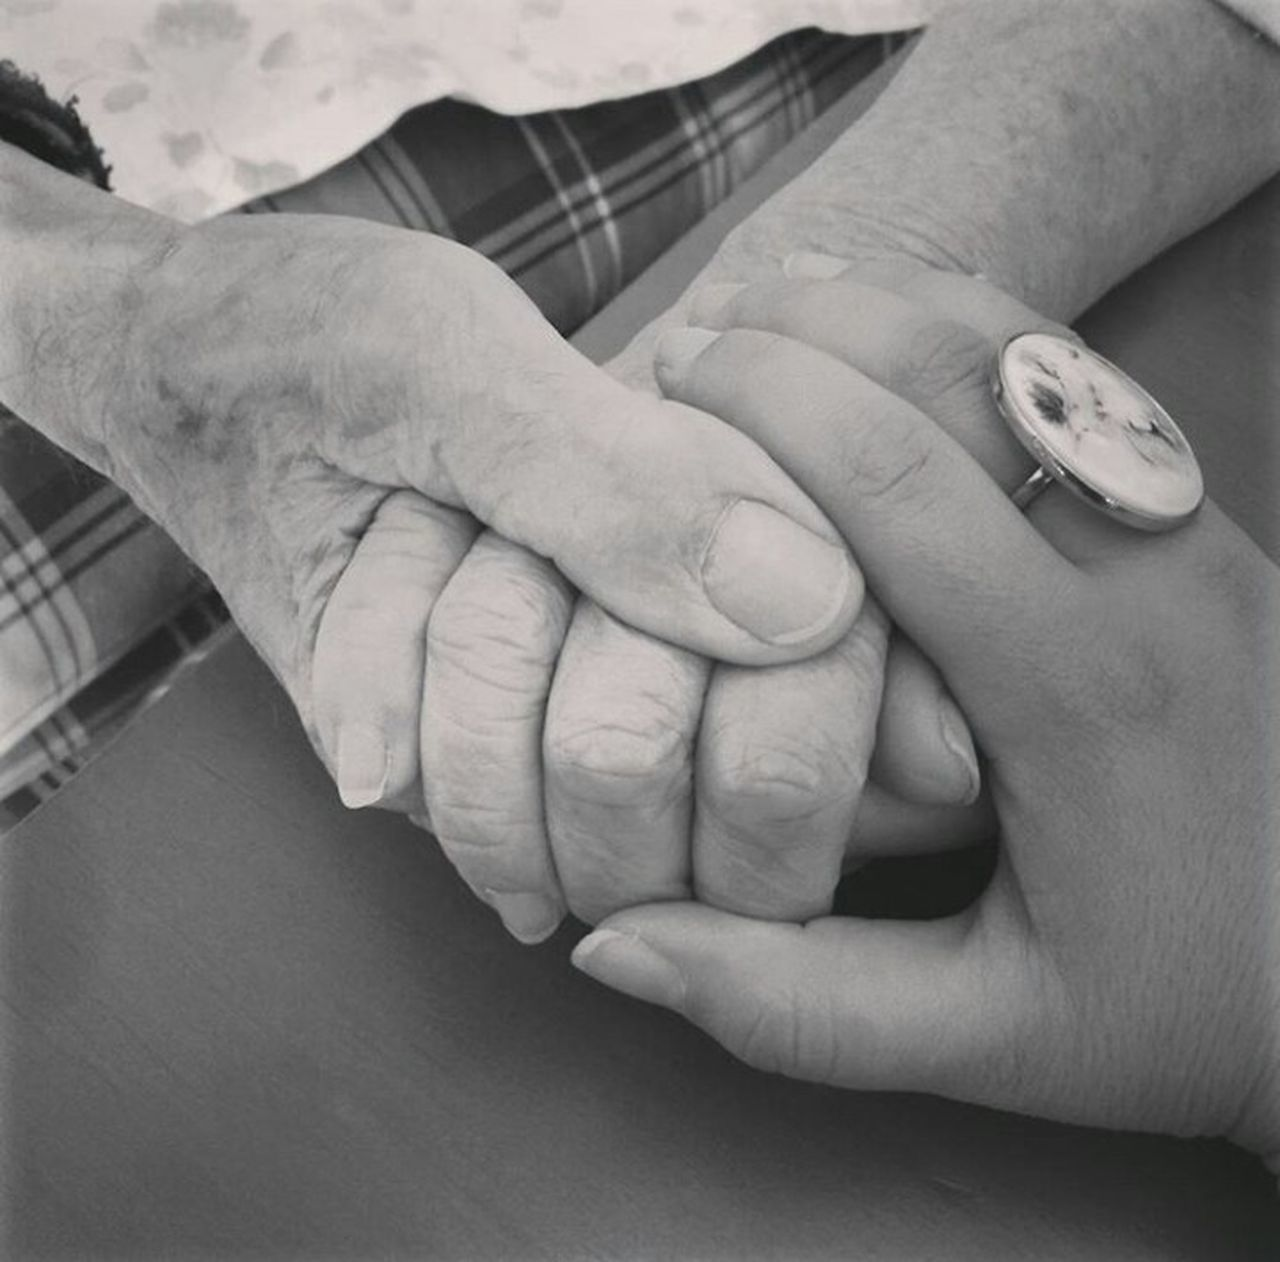 Human Hand Human Body Part Close-up People Adult Day Grandma Granfather Love Family❤